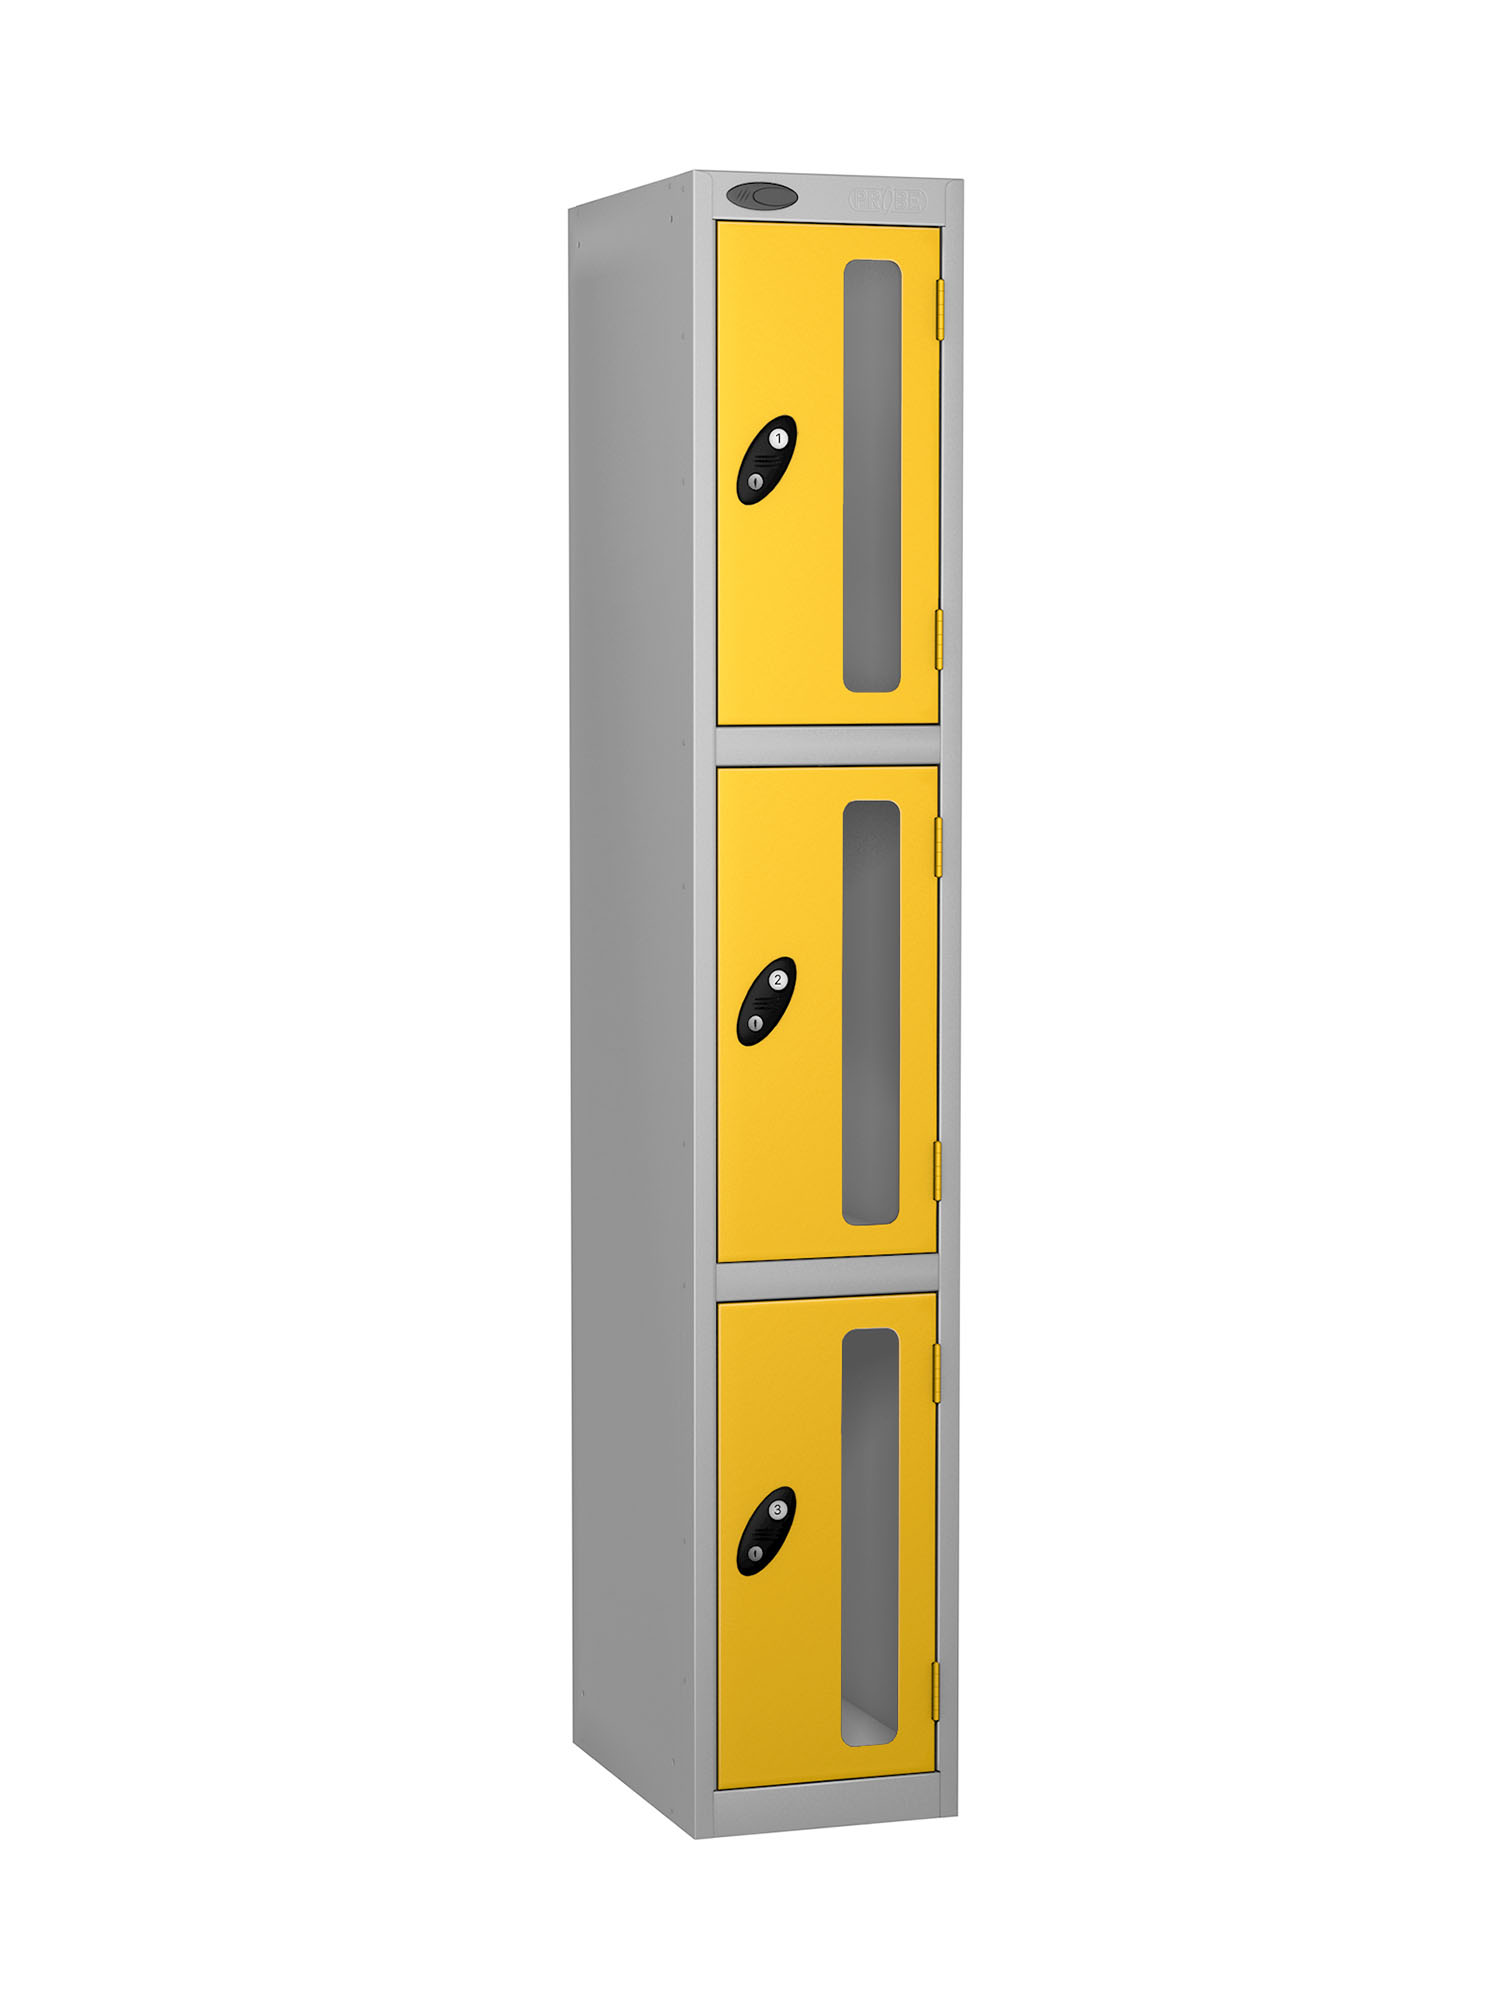 Probe 3 doors vision panel anti-stock theft locker yellow